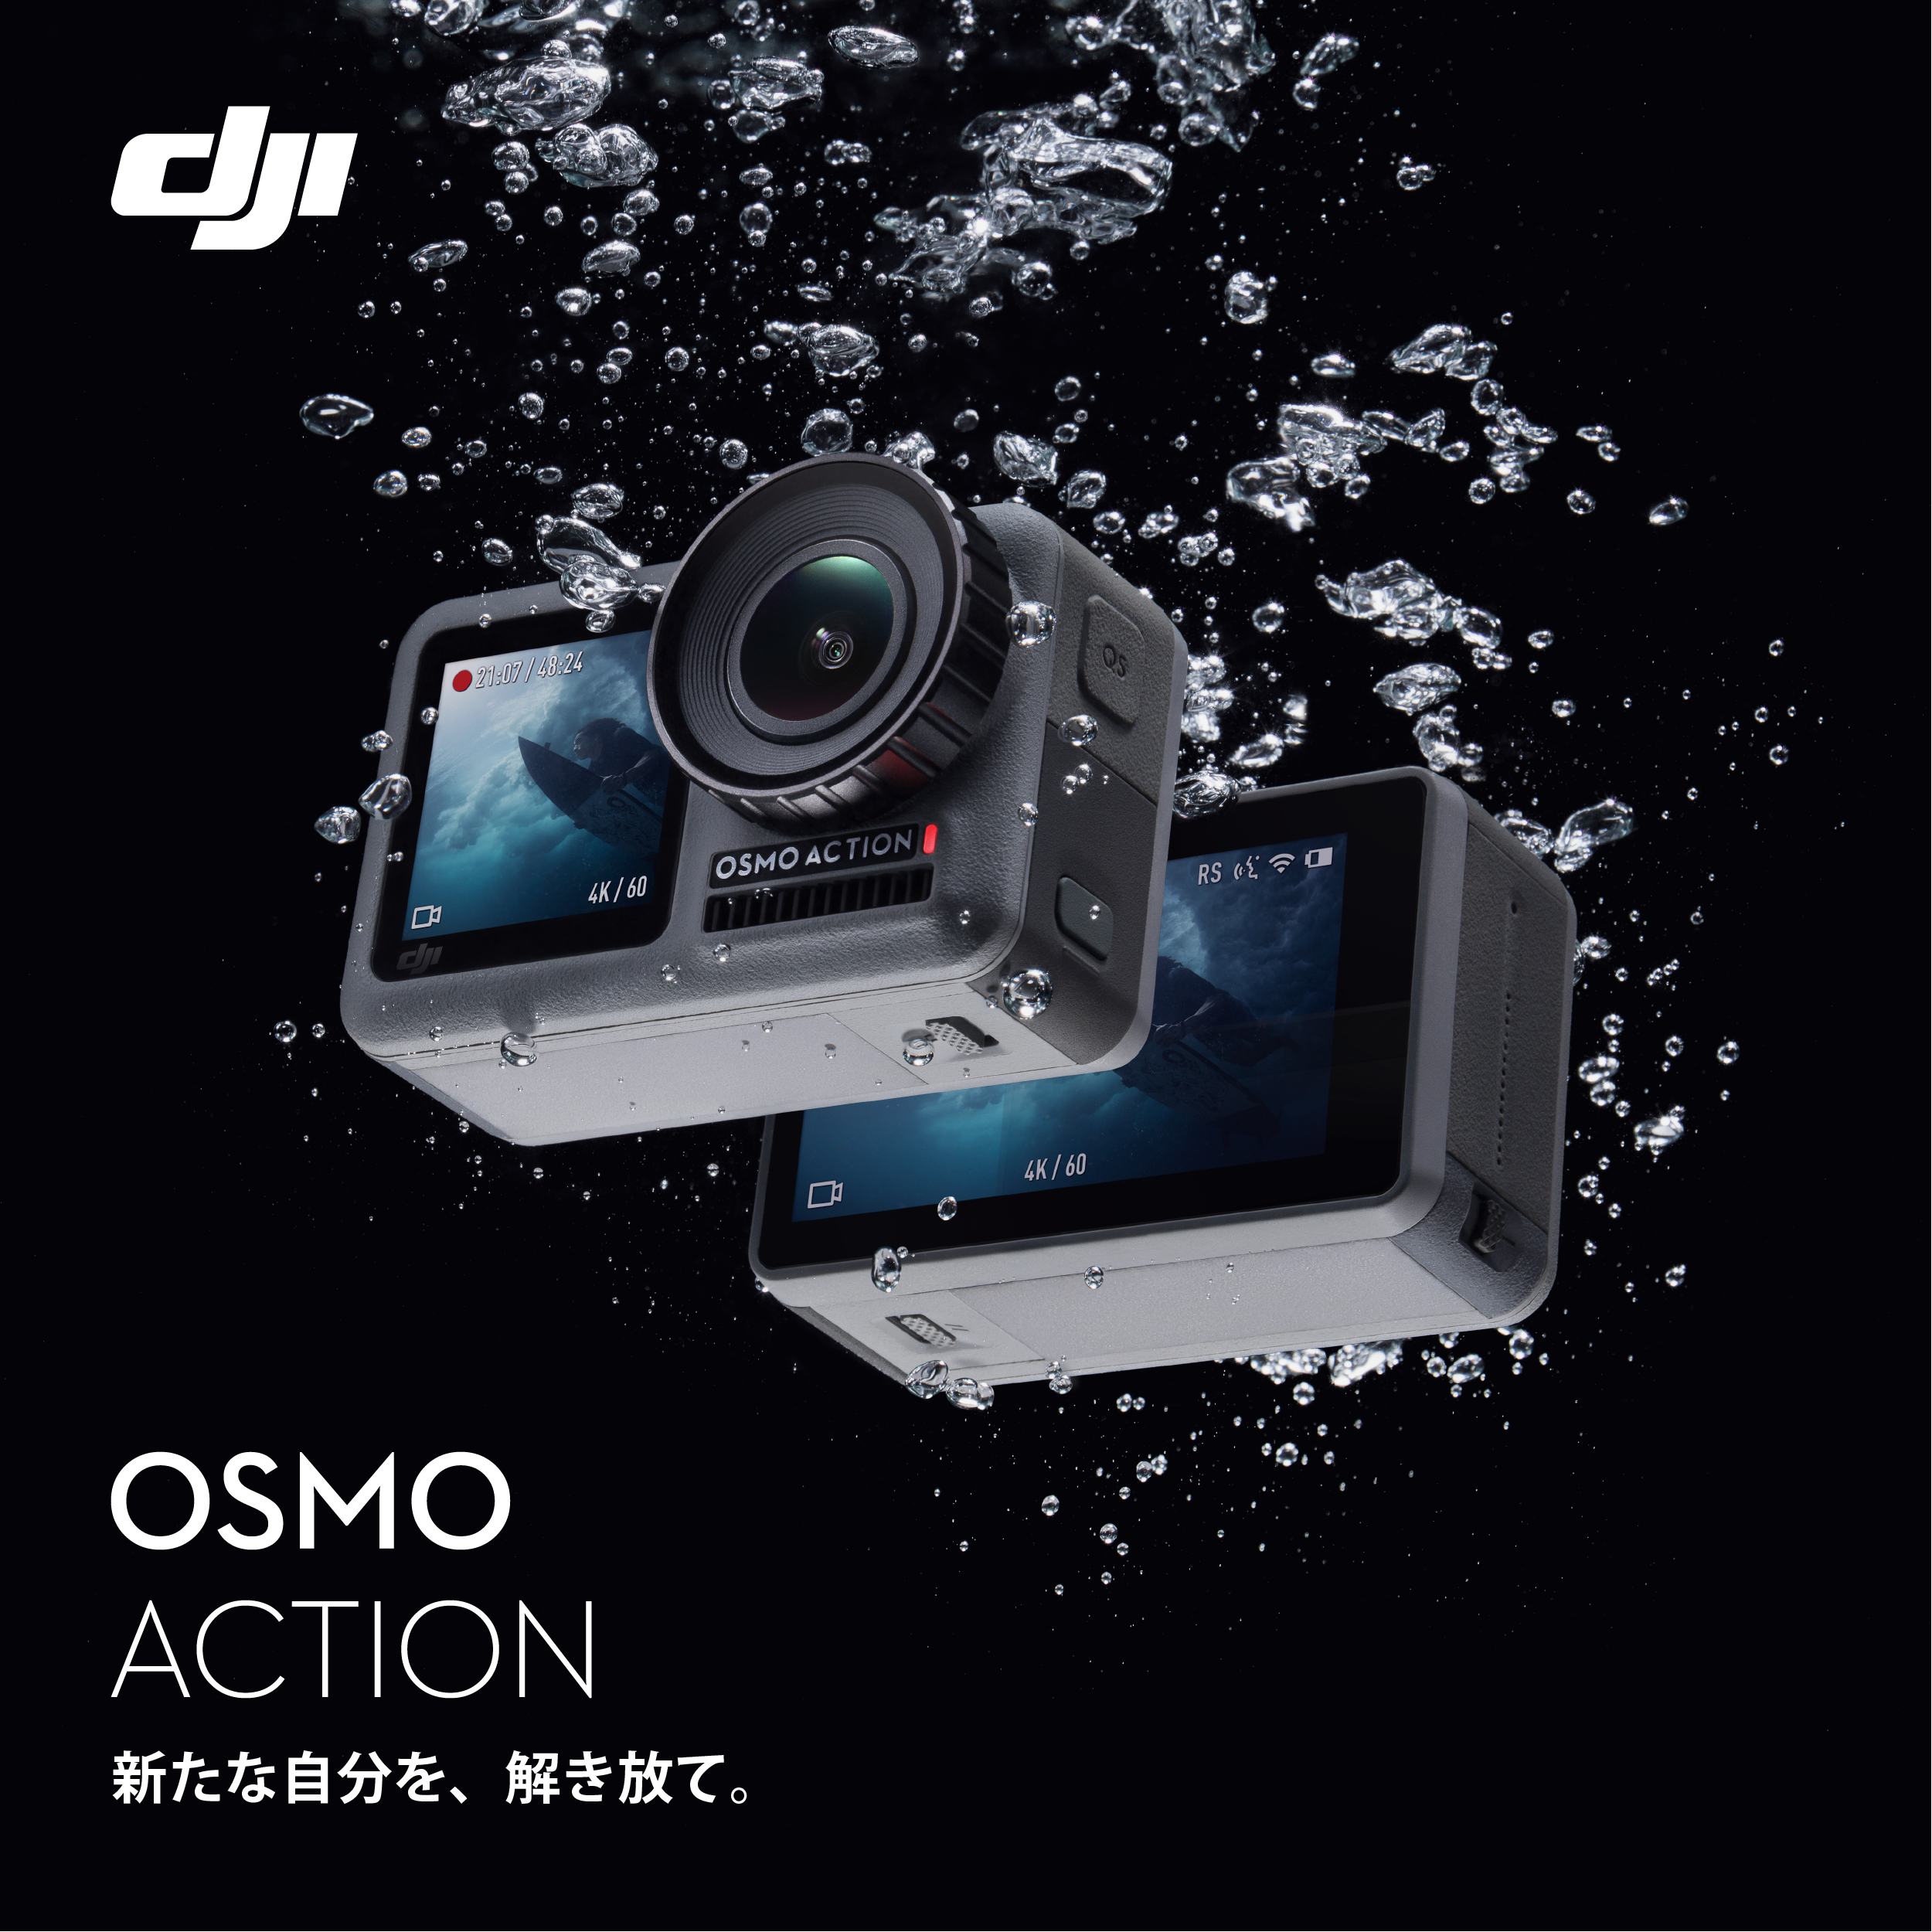 OSMO ACTION Square Banner